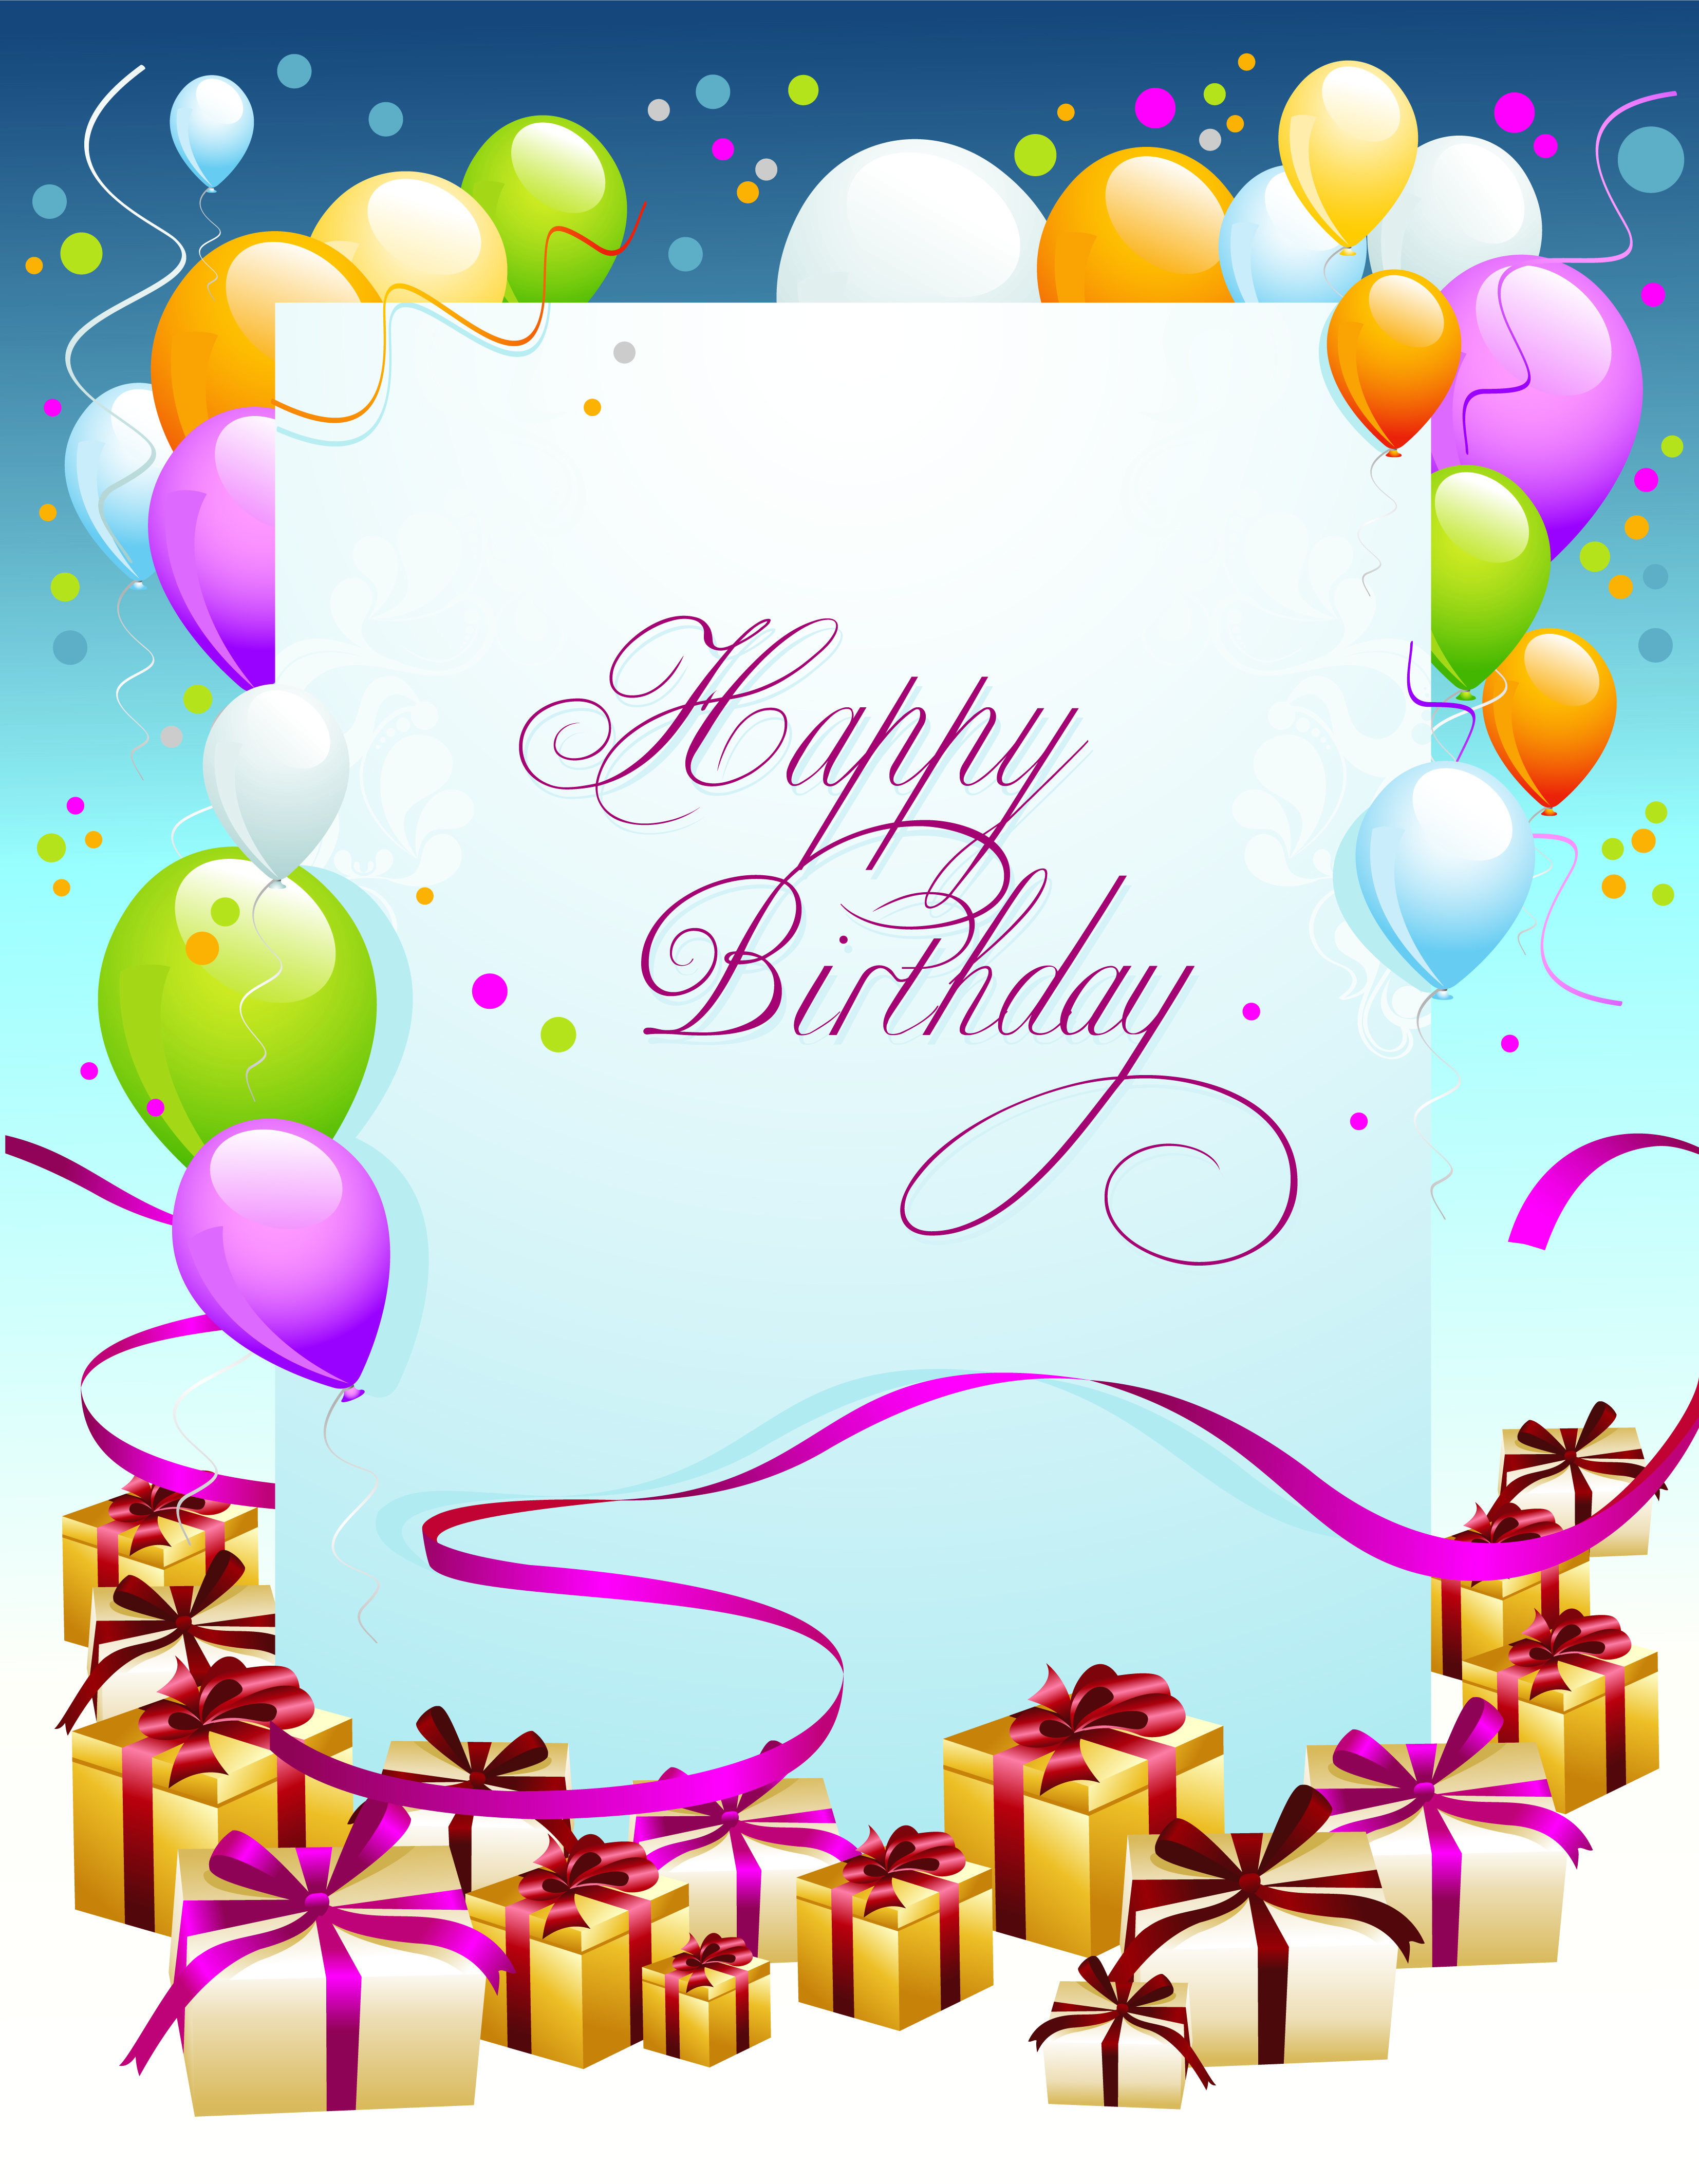 Sample birthday poster template photoshop